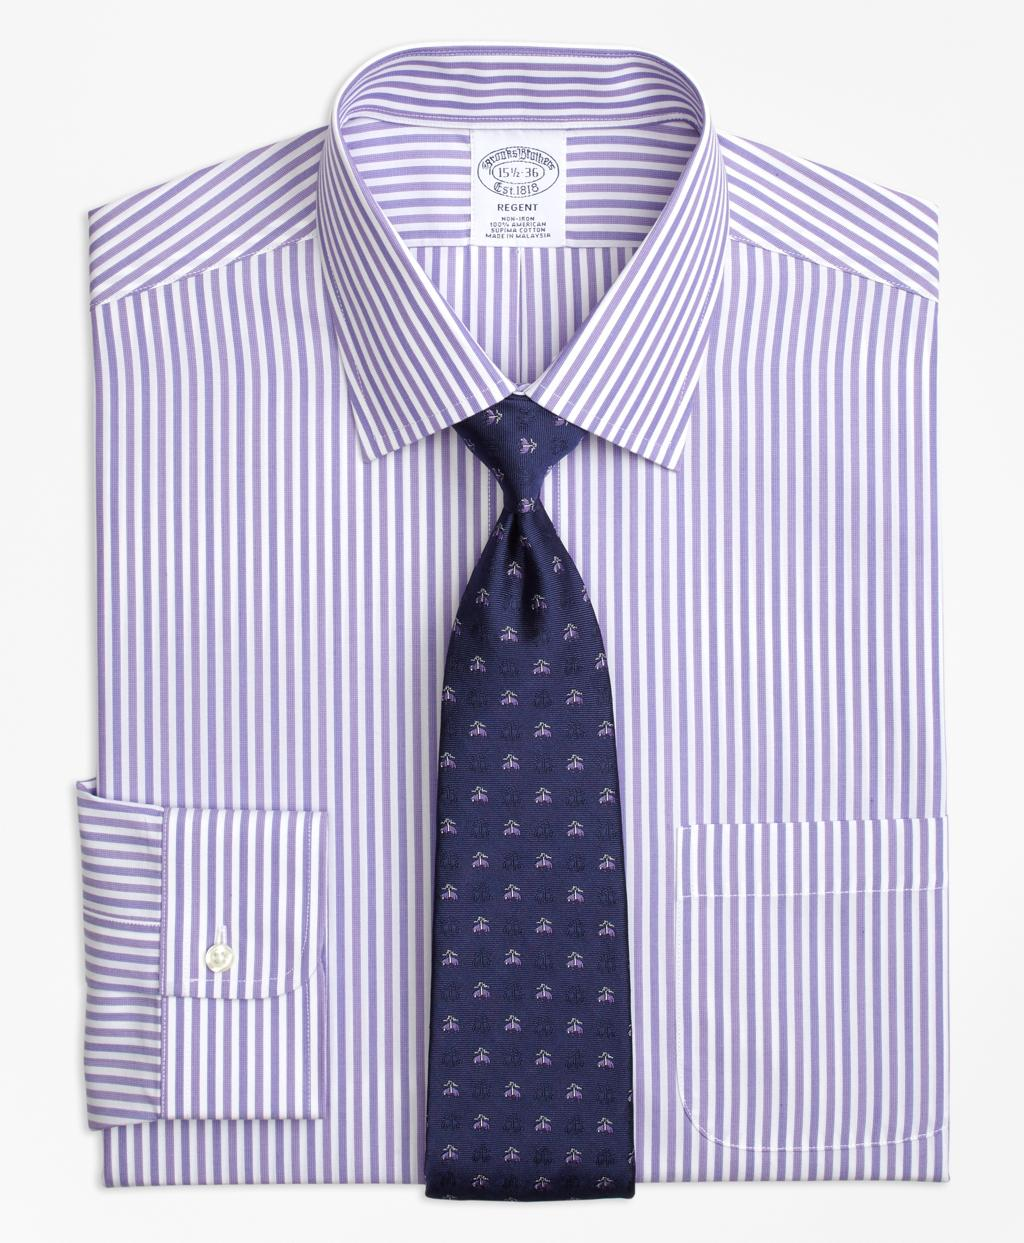 Lyst brooks brothers regent fitted dress shirt non iron for Brooks brothers non iron shirts review